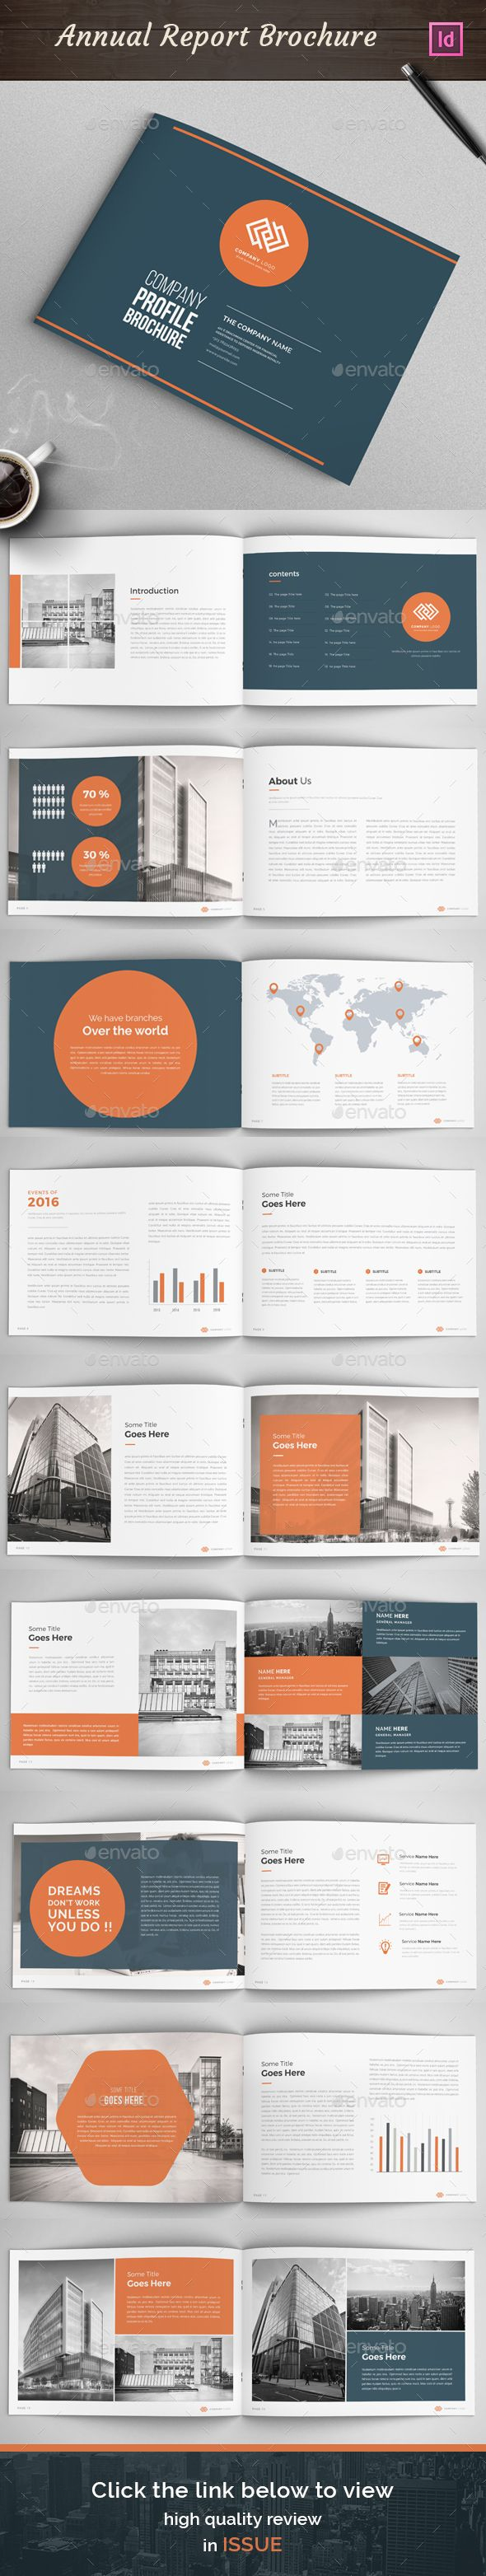 Business Profile Example FREE DOWNLOAD